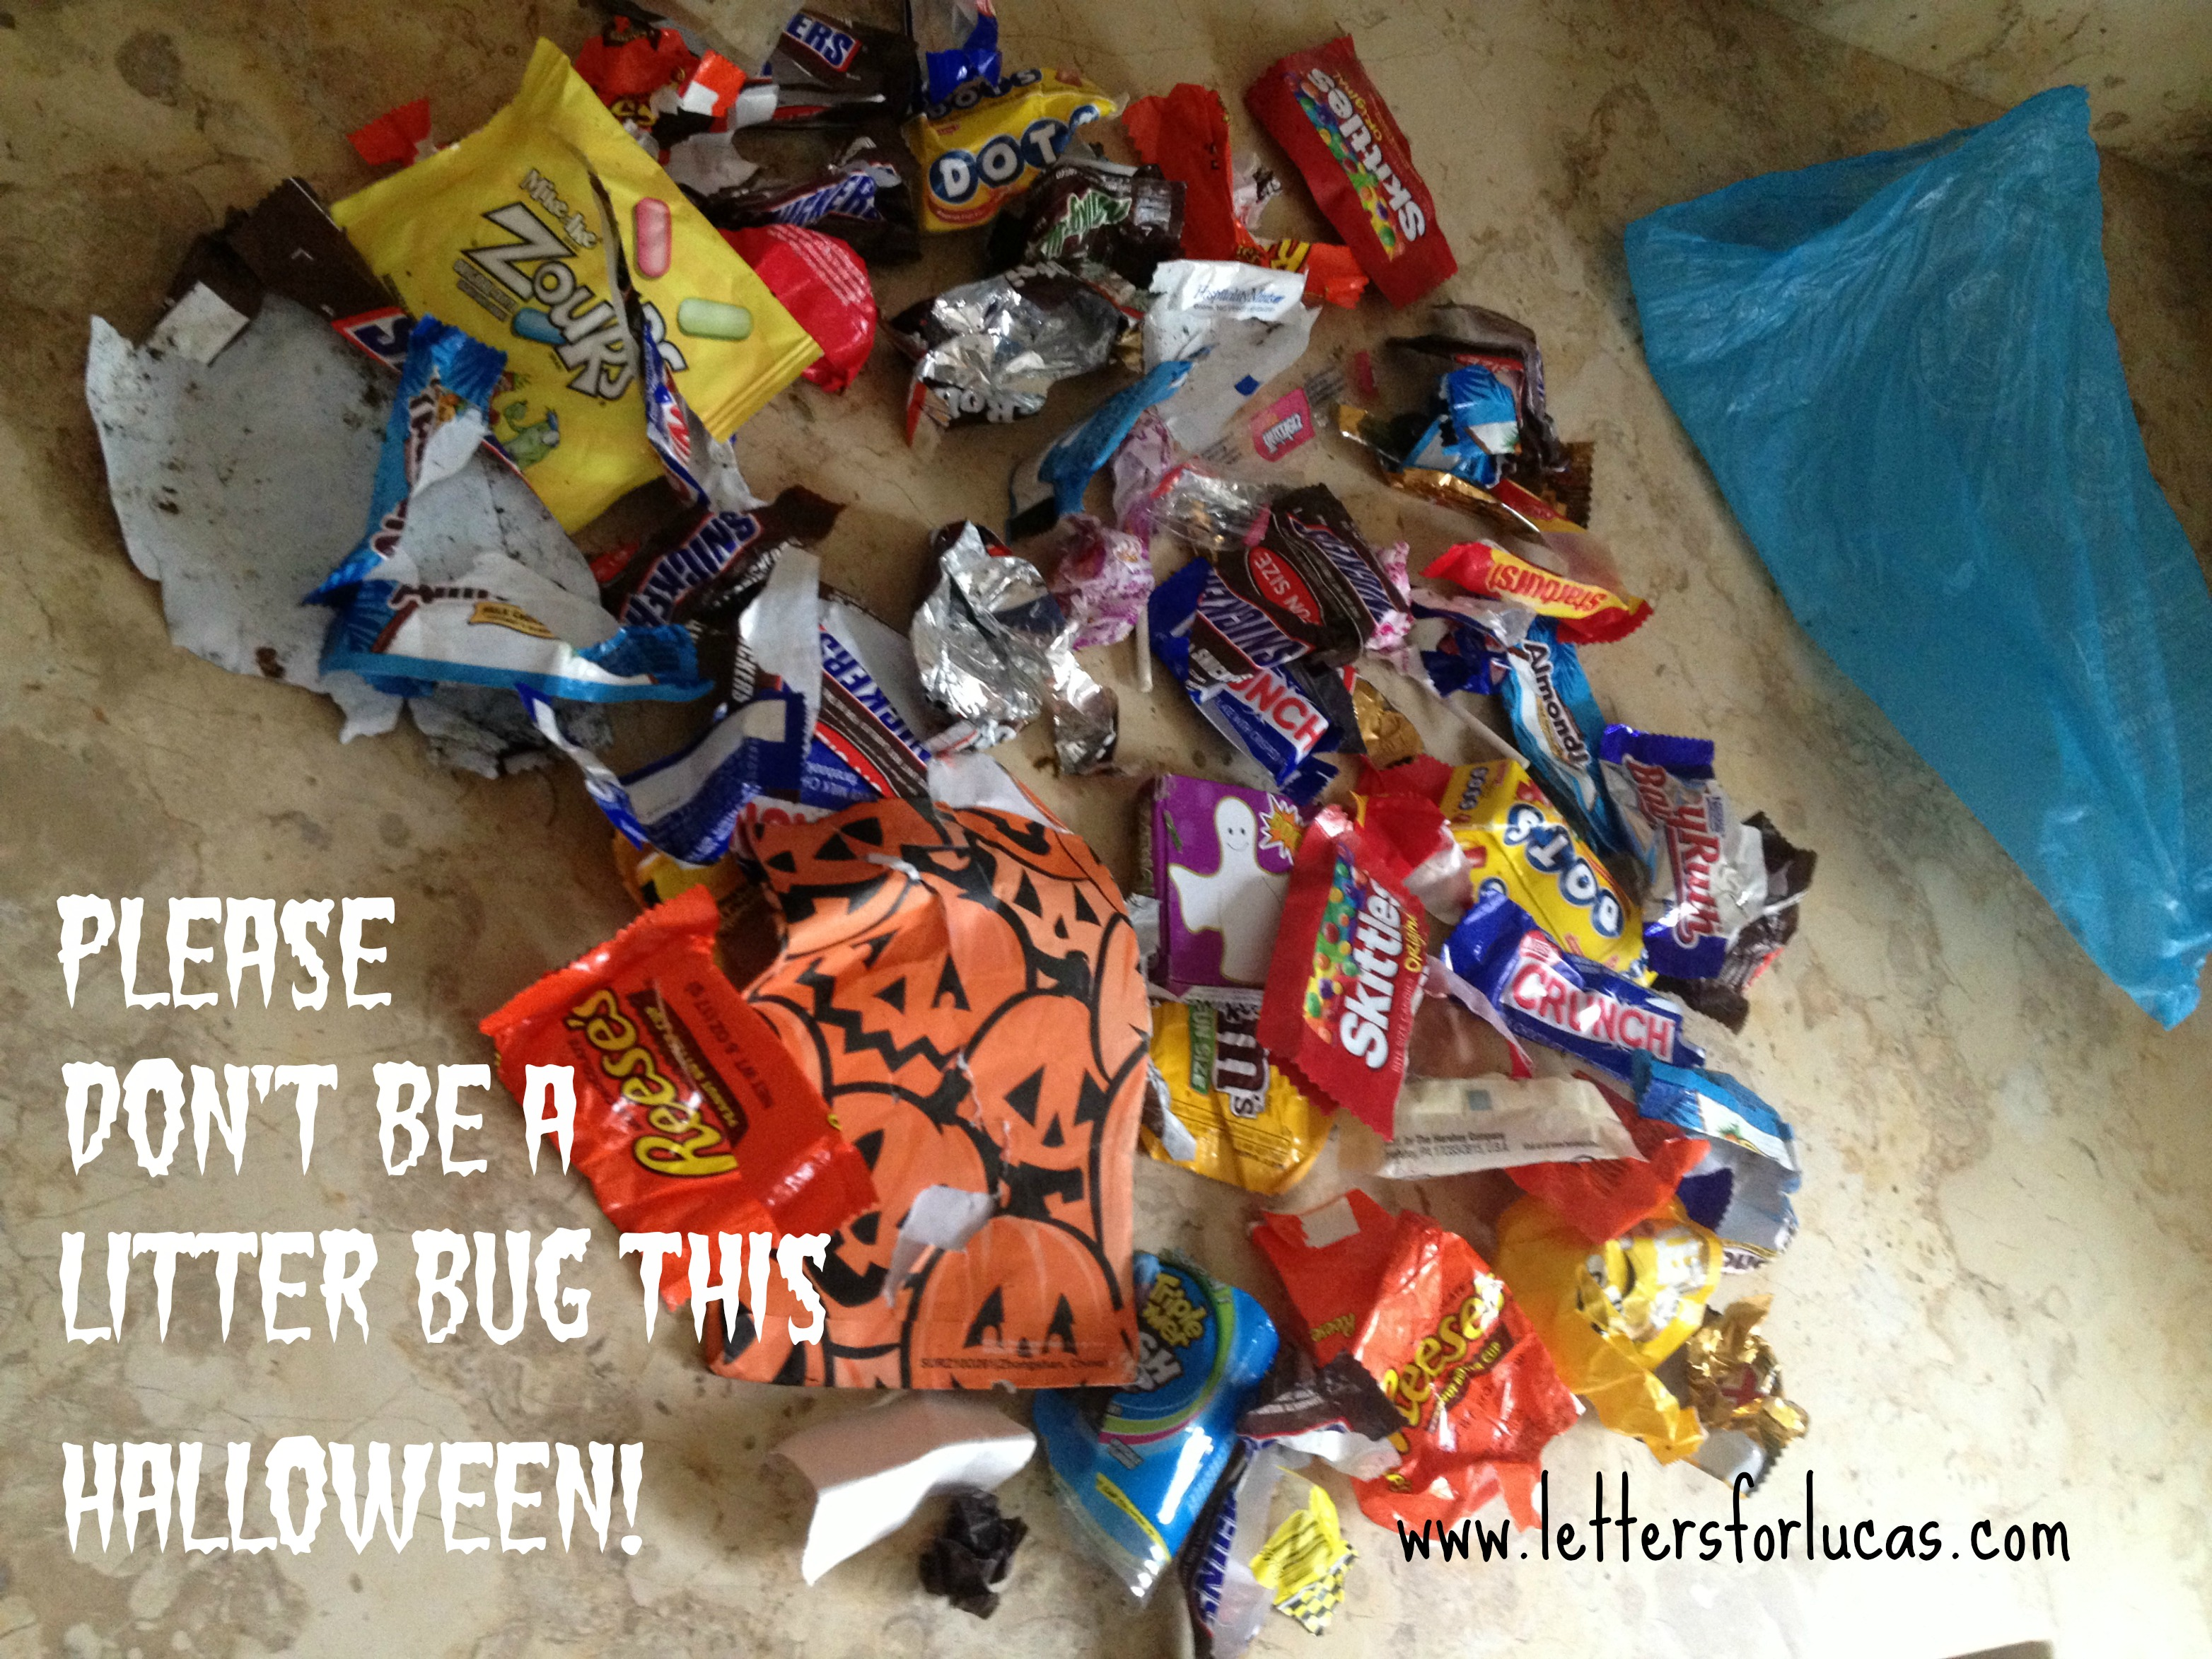 Don't be a litter bug on Halloween!